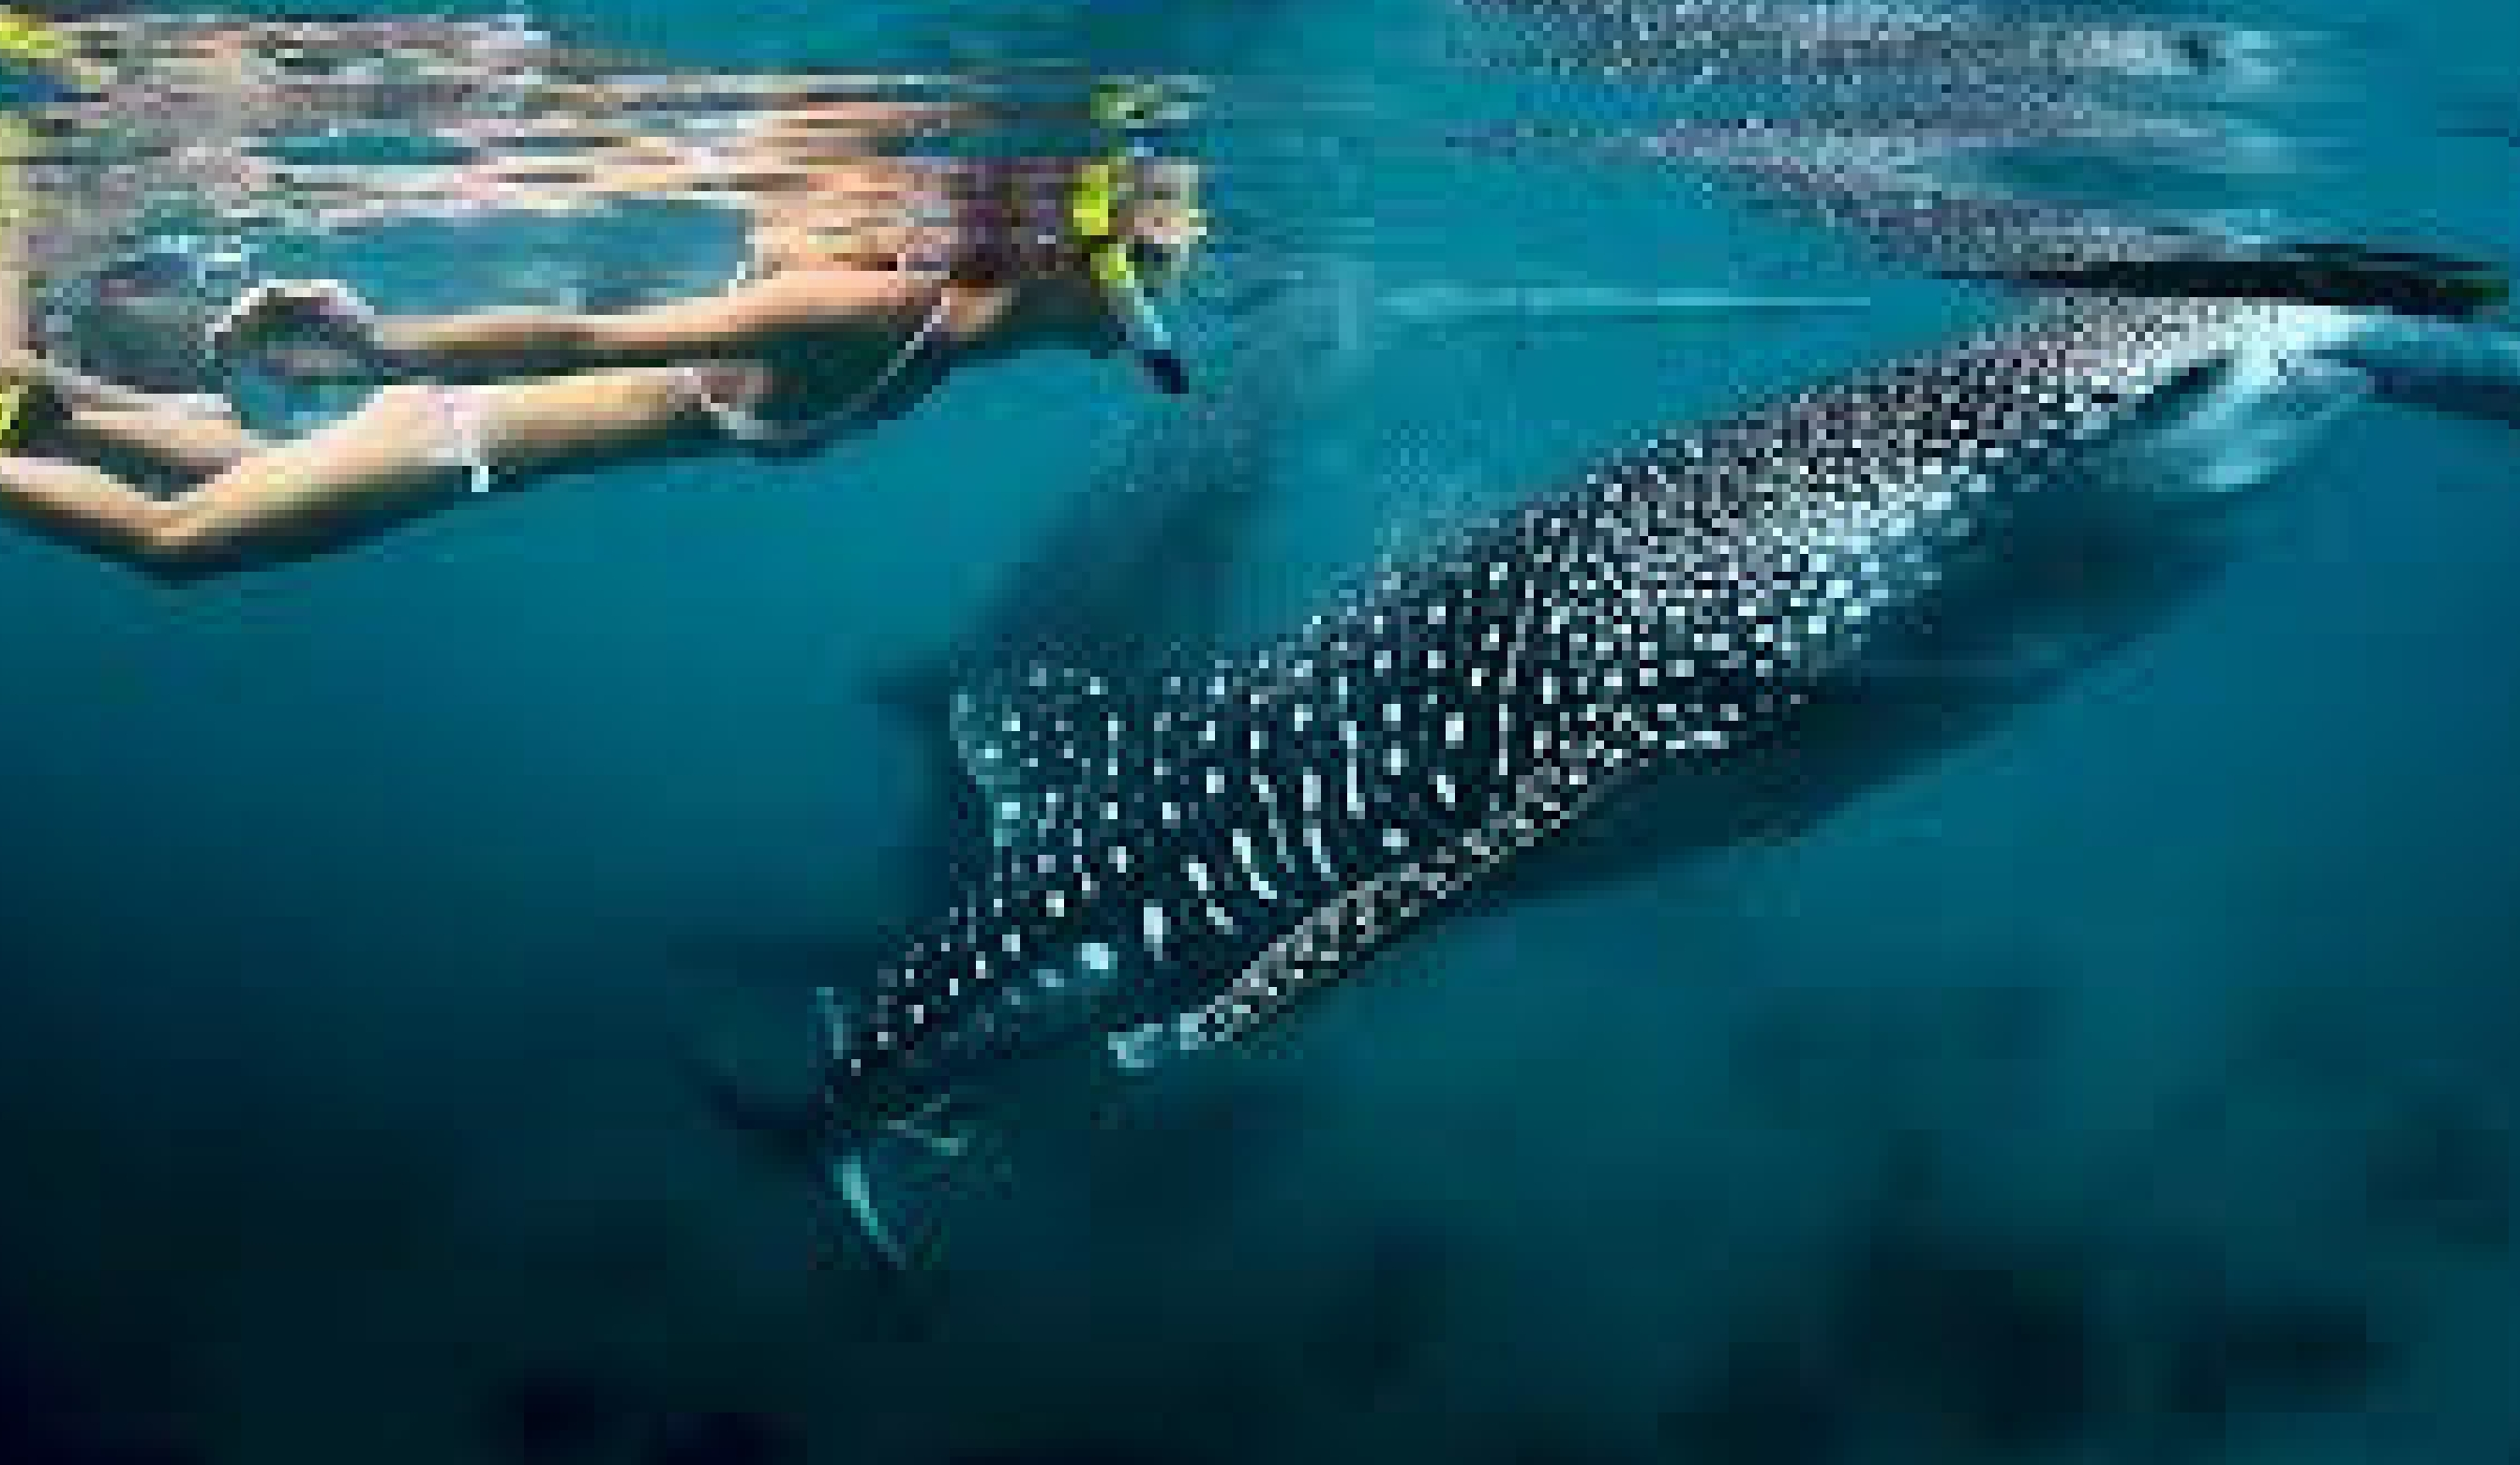 backpacking africa story, whale sharks, backpacking south africa